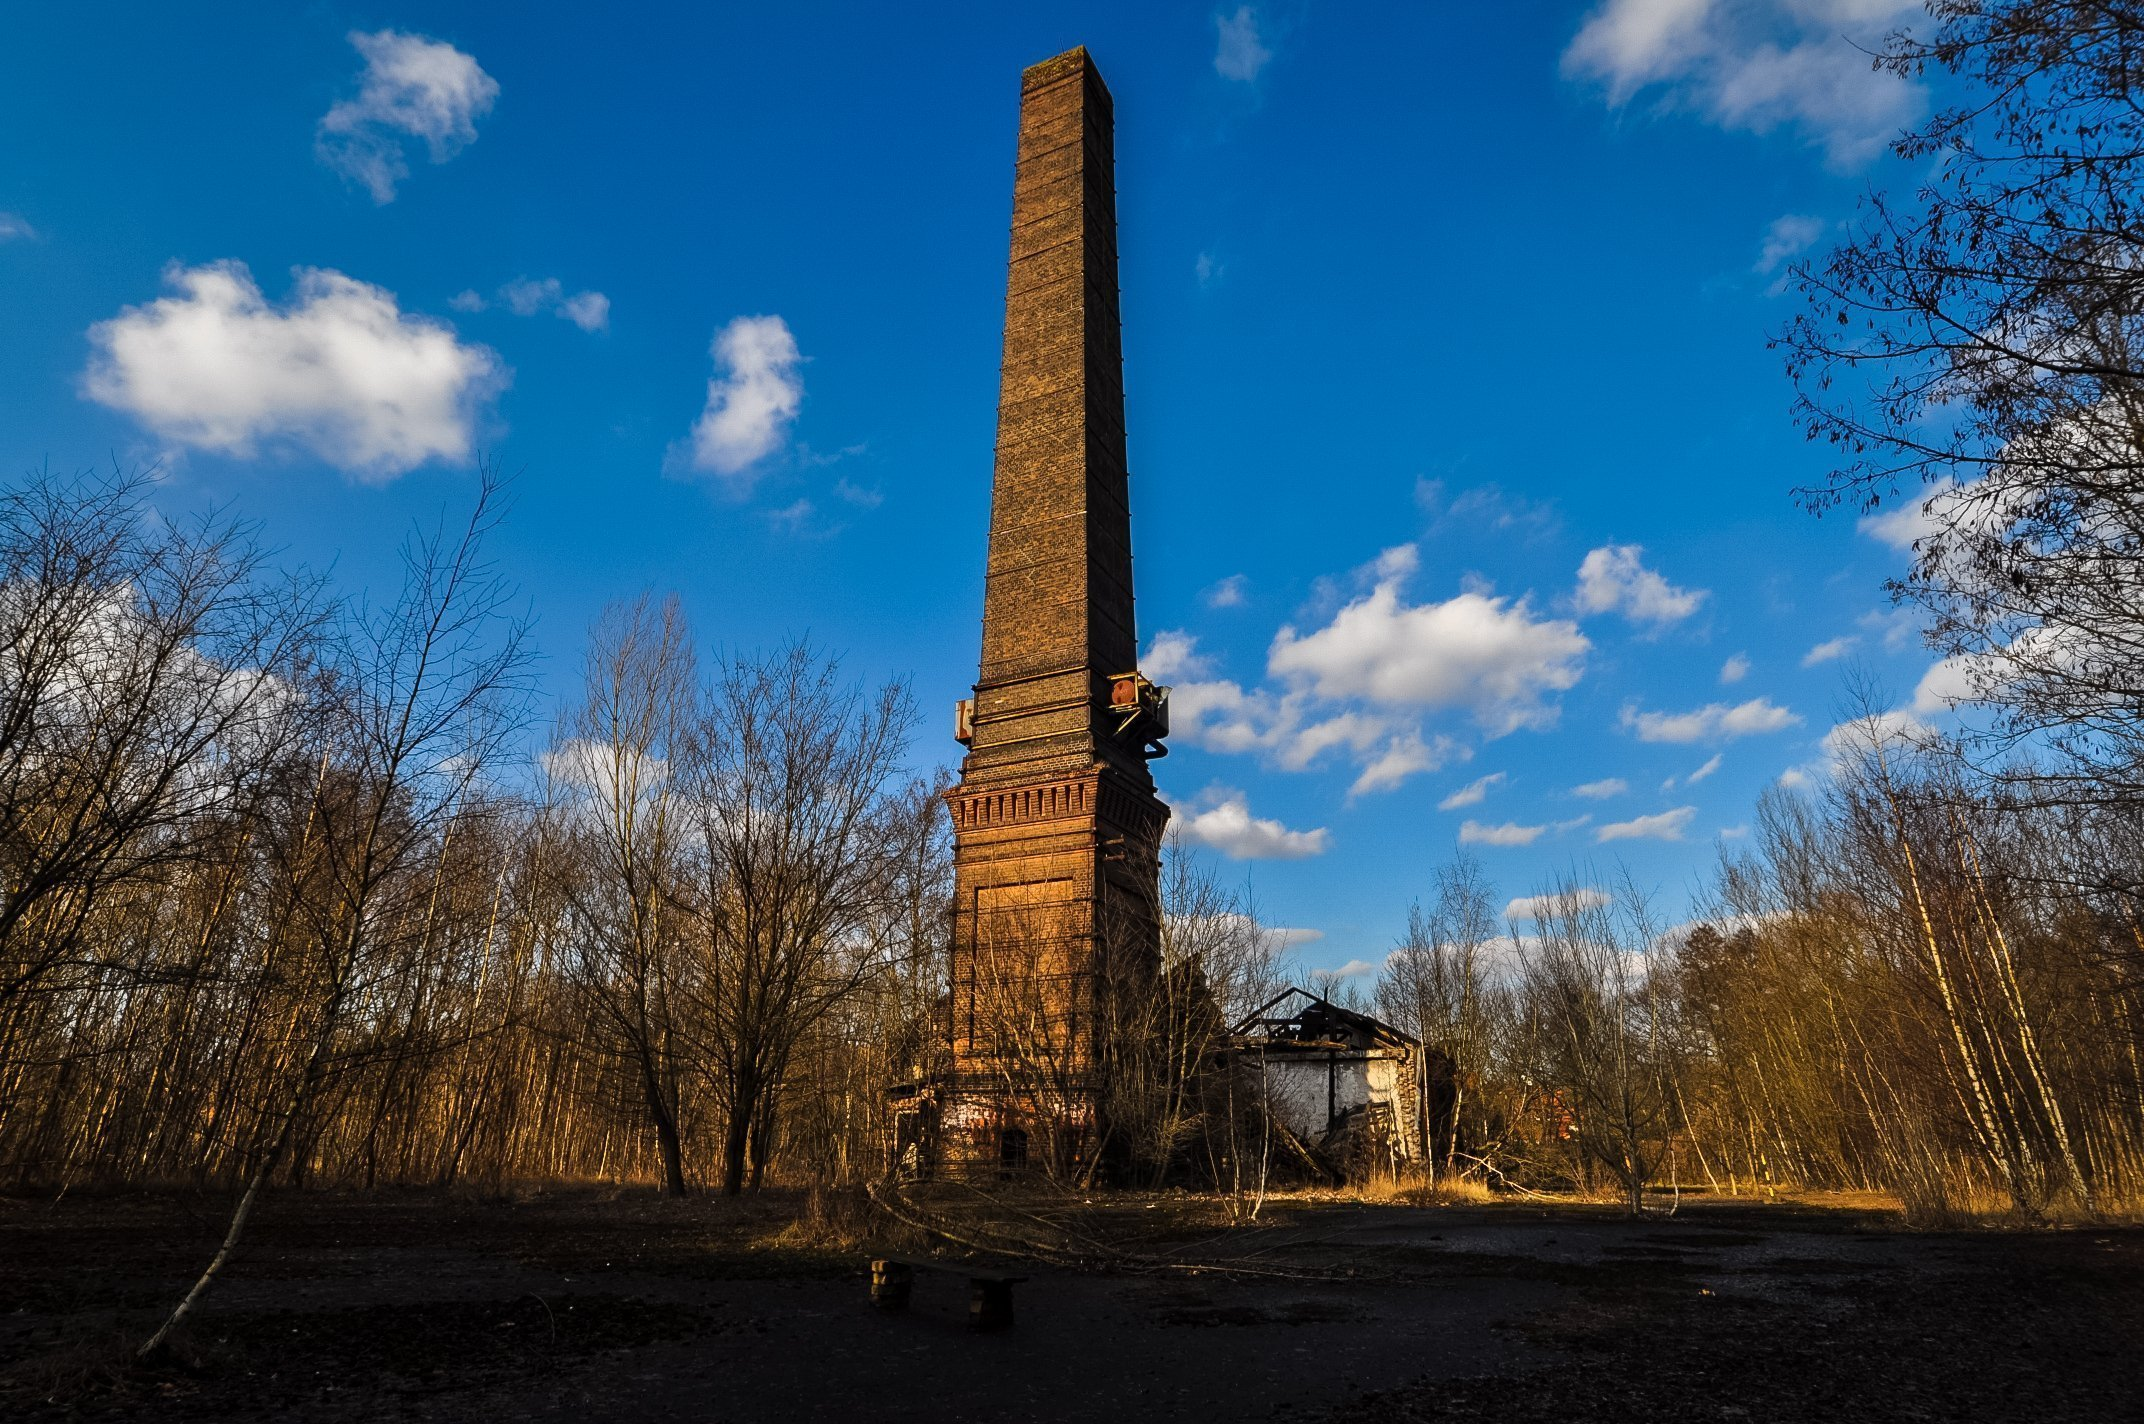 abandoned berlin urbex lost places berlin urban exploring germany horseshoe nail factory chimney tower